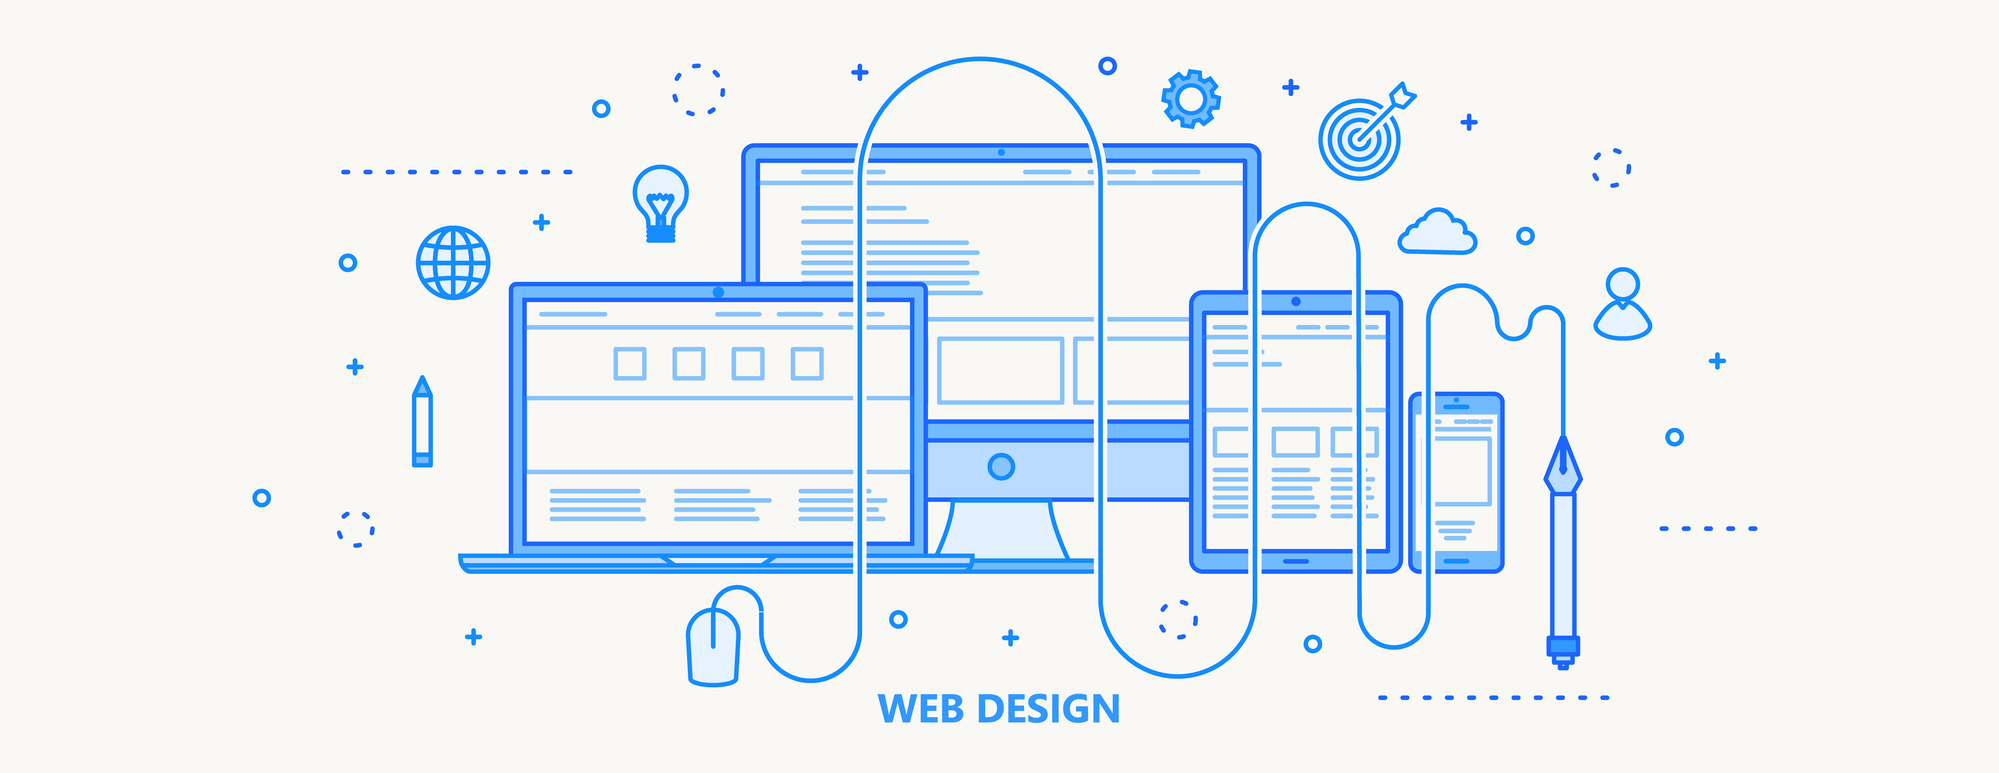 3 Helpful Animation Tips For Your Web Design